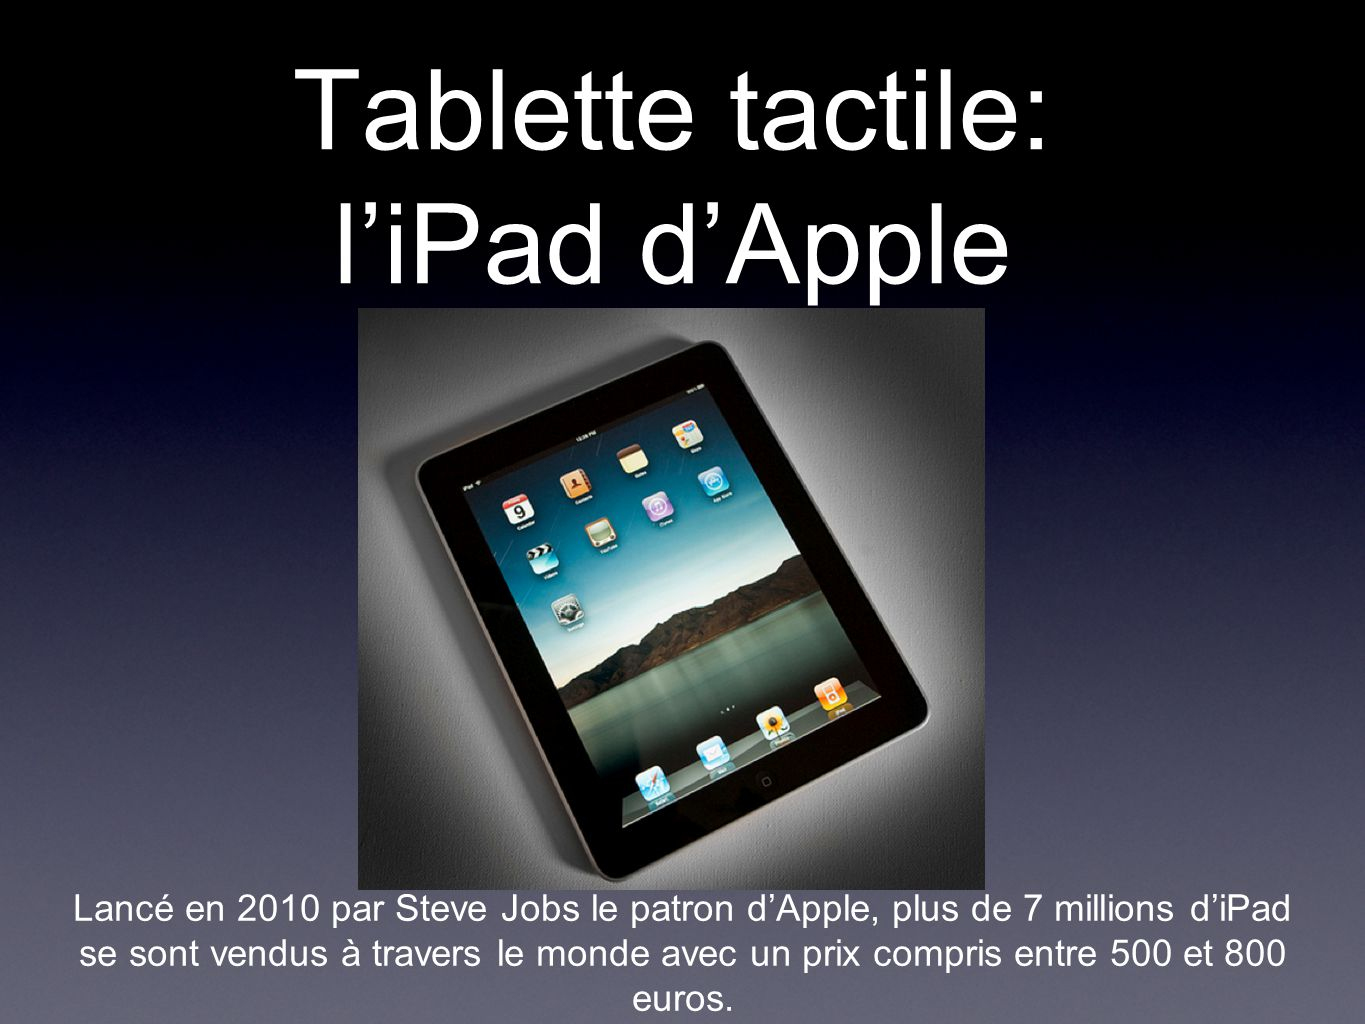 tablette tactile l ipad d apple ppt video online t l charger. Black Bedroom Furniture Sets. Home Design Ideas